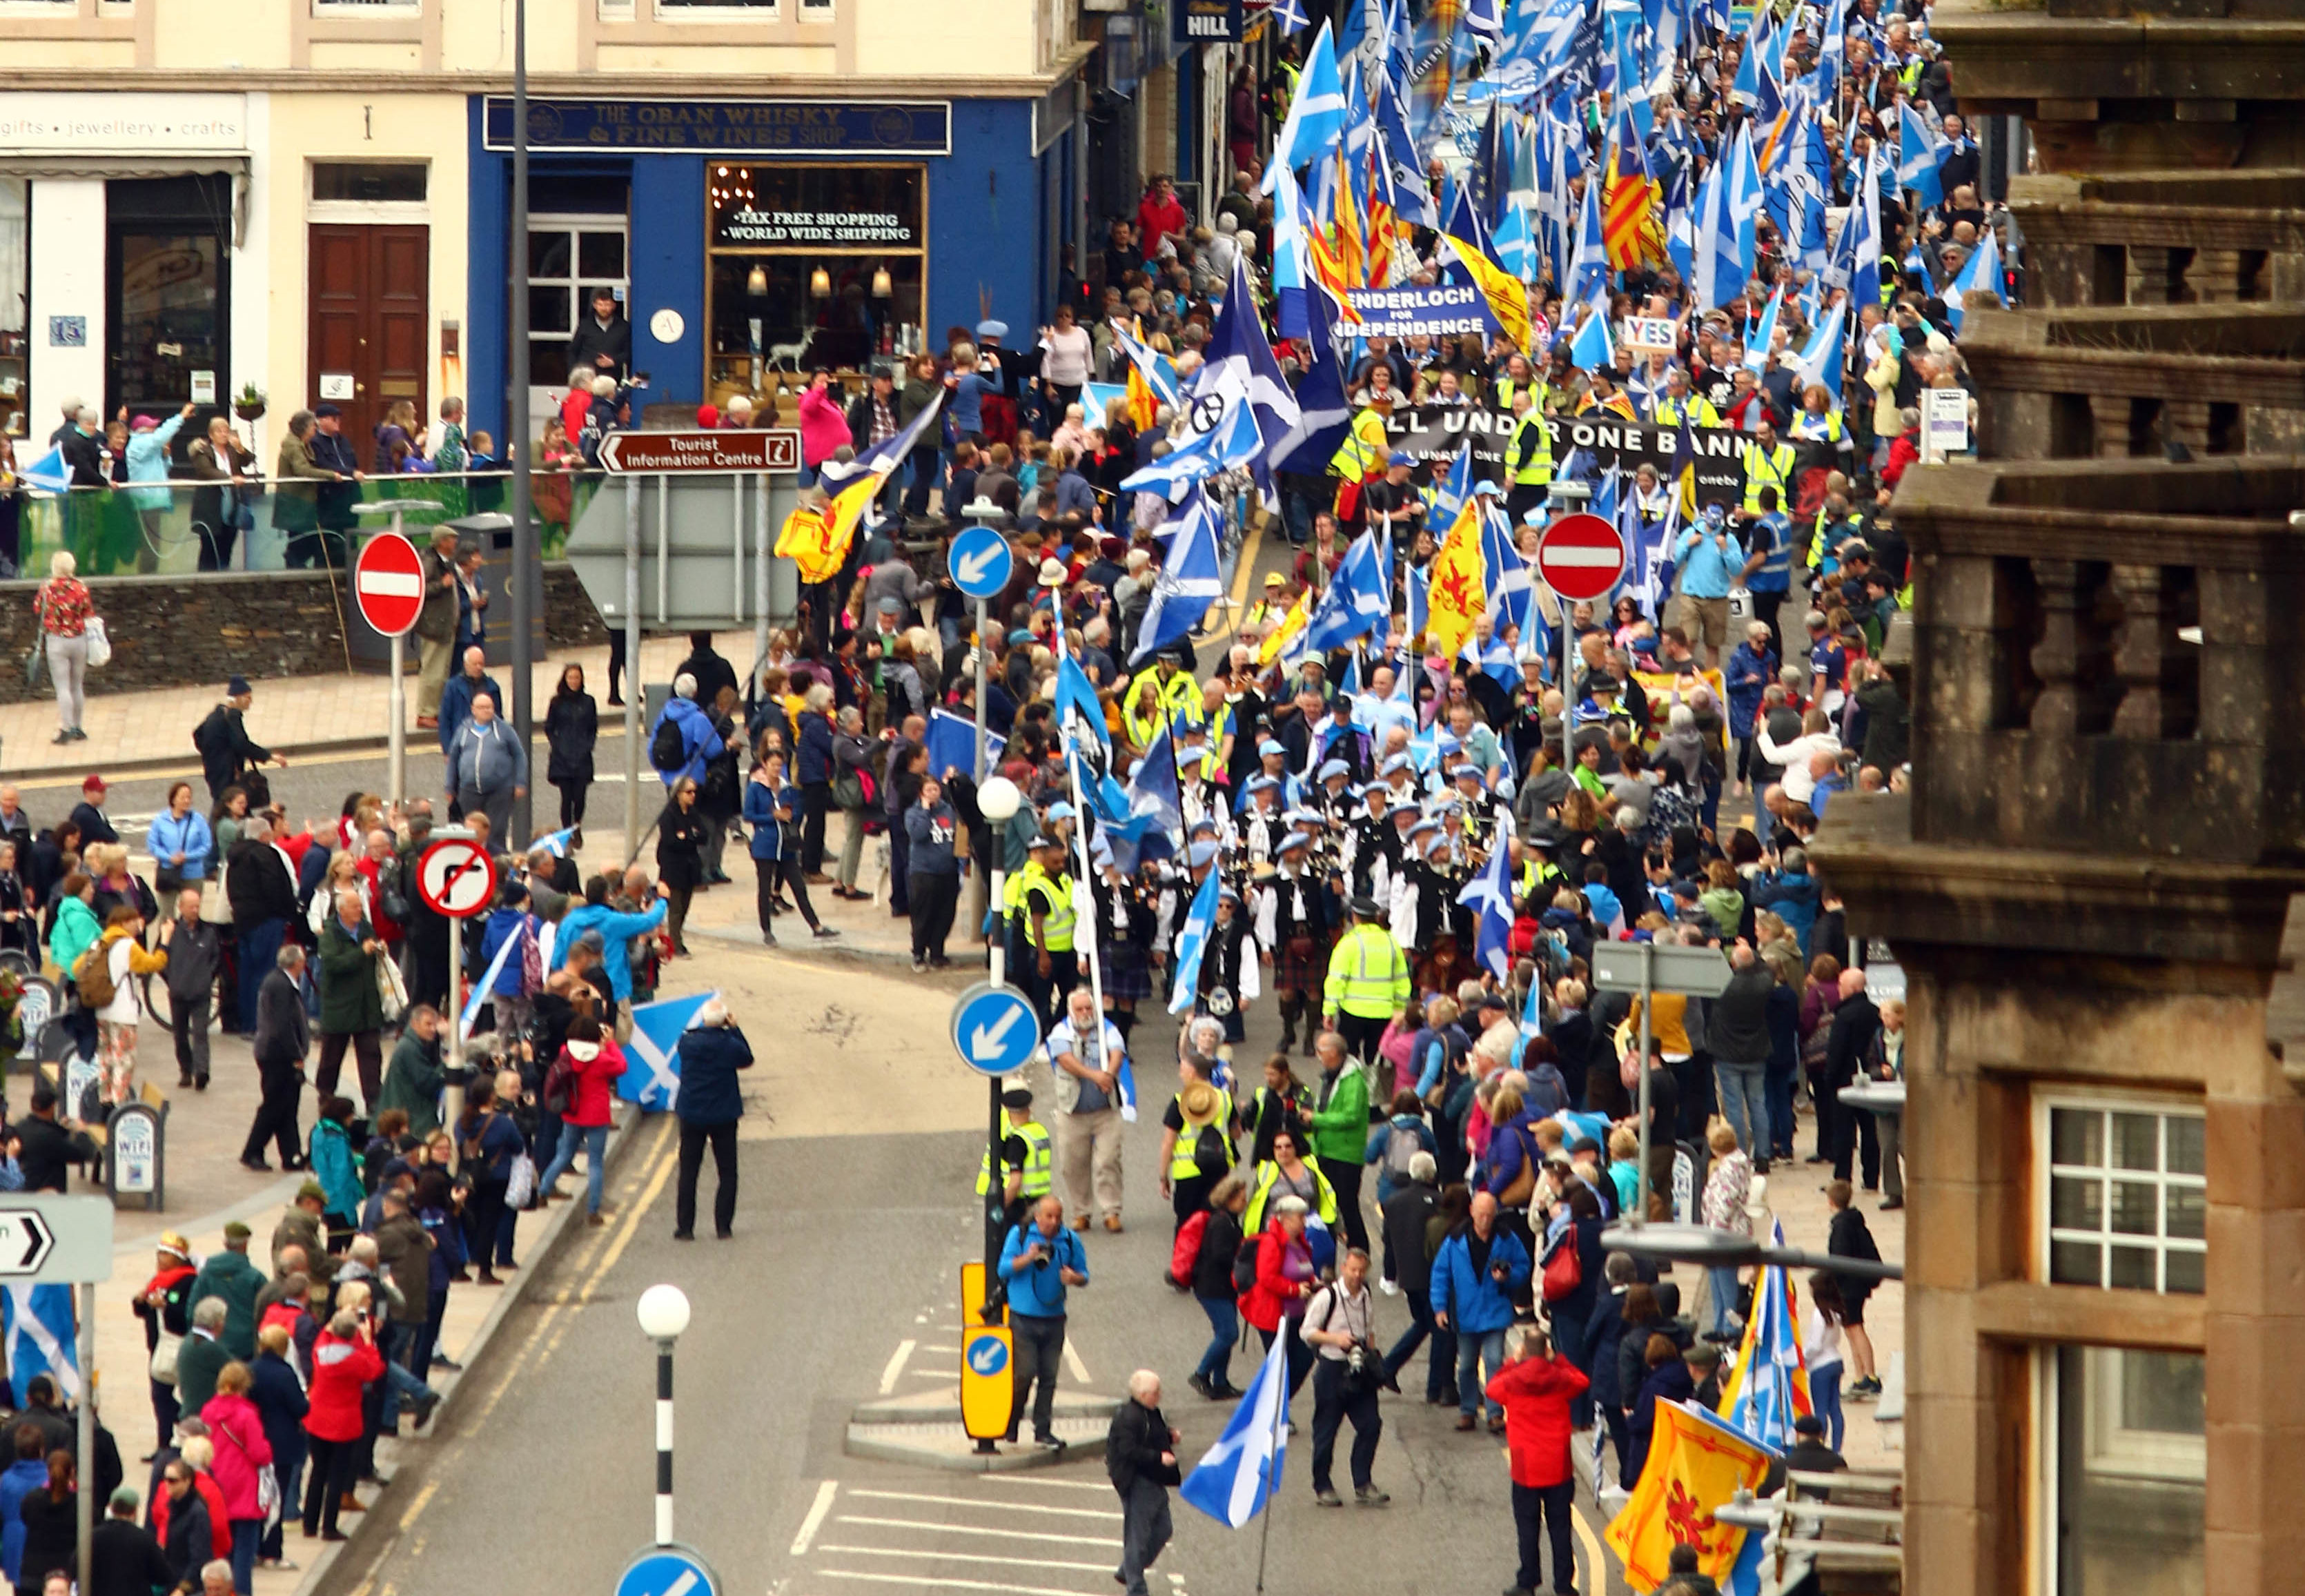 The march in Oban